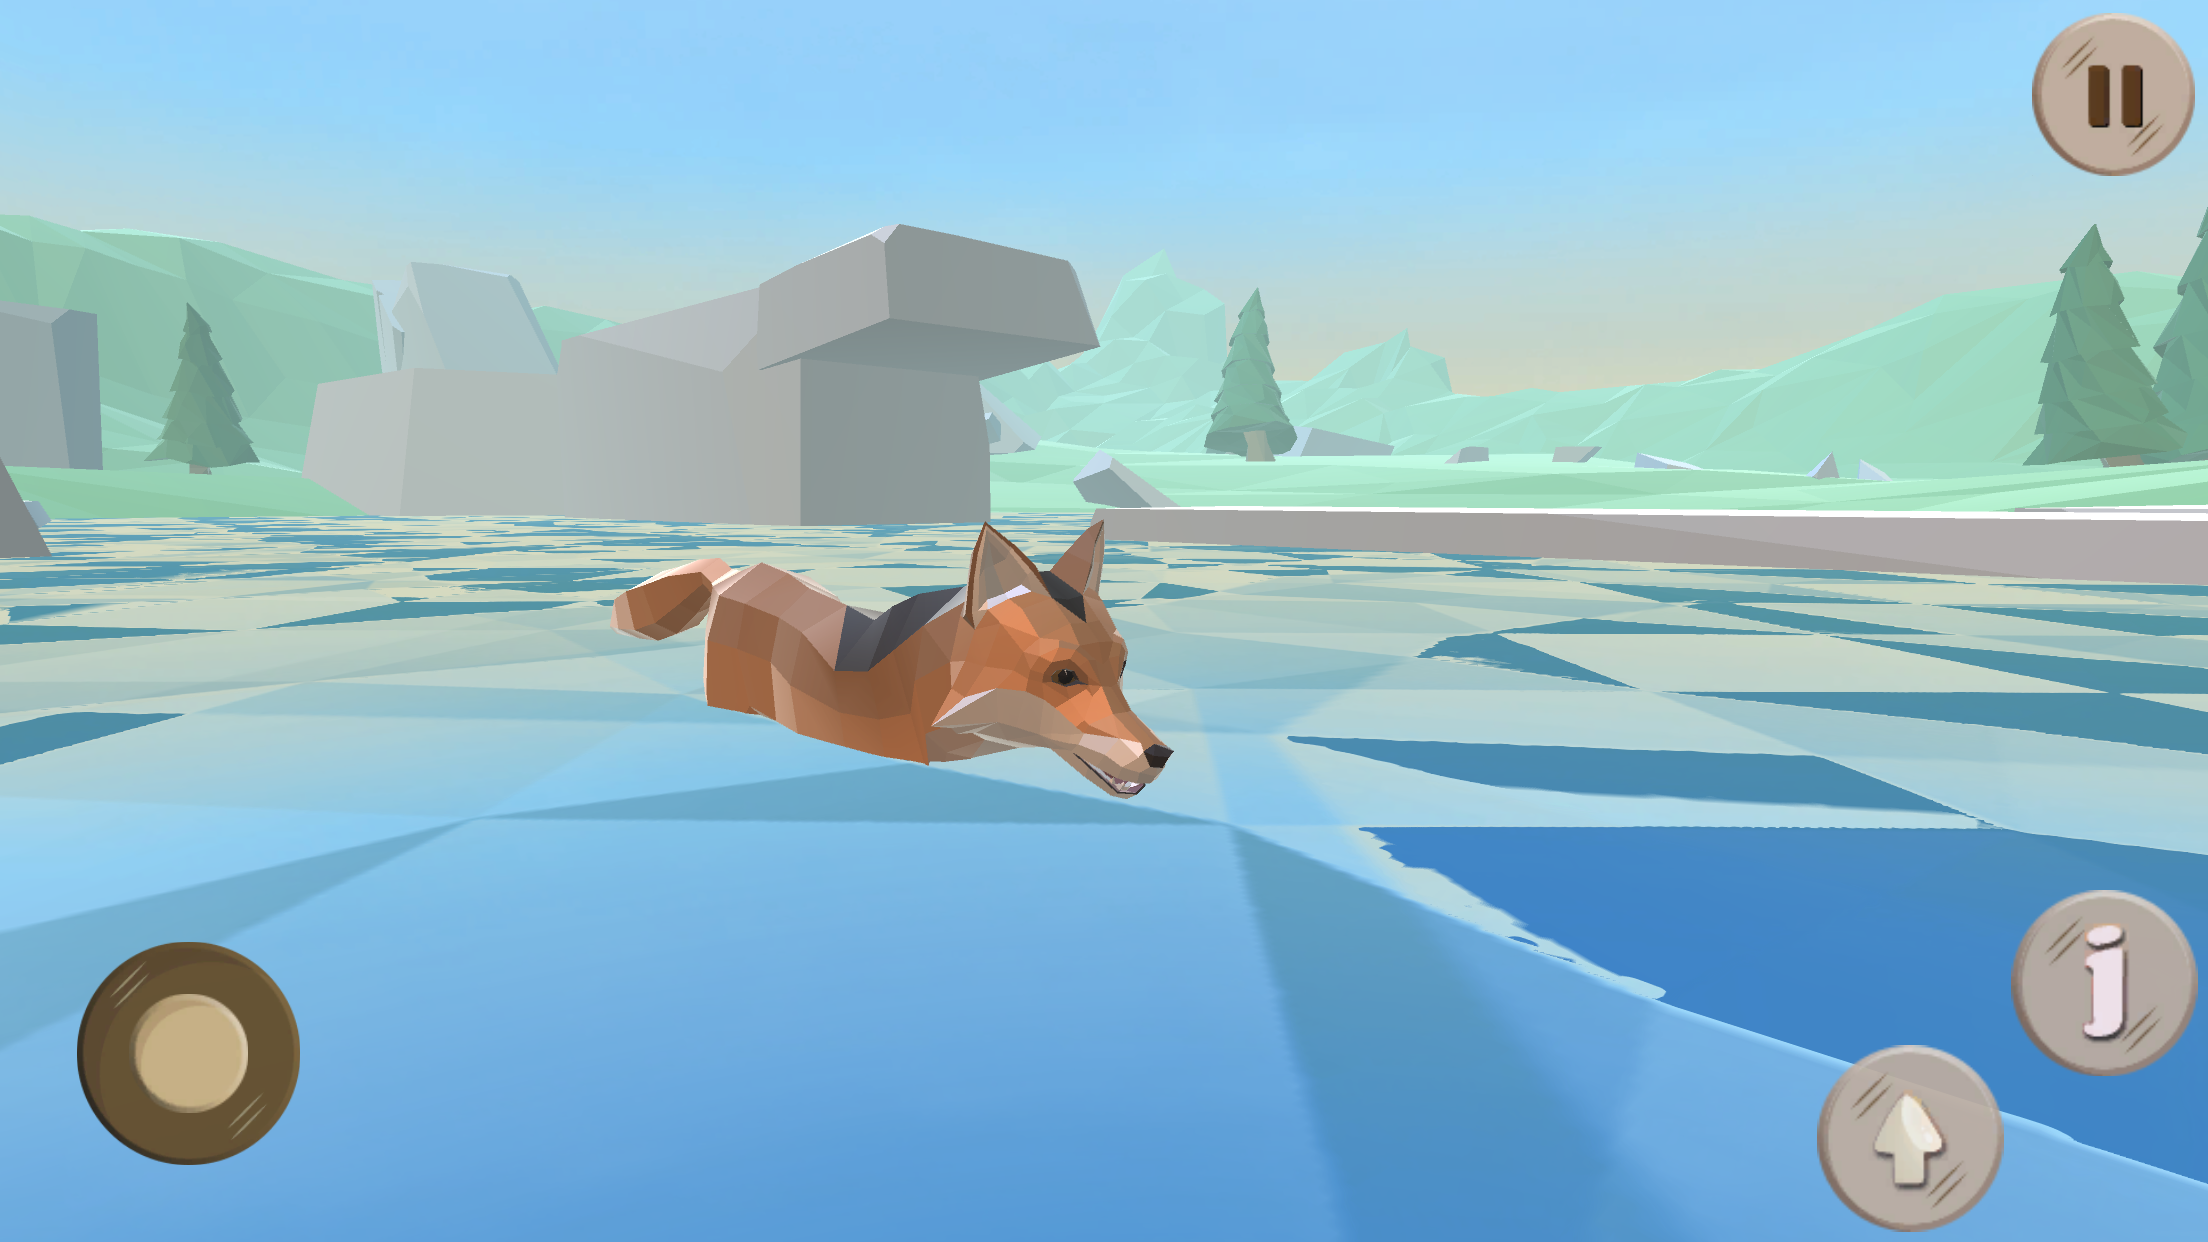 Fox Evolution - Snow 3D Forest